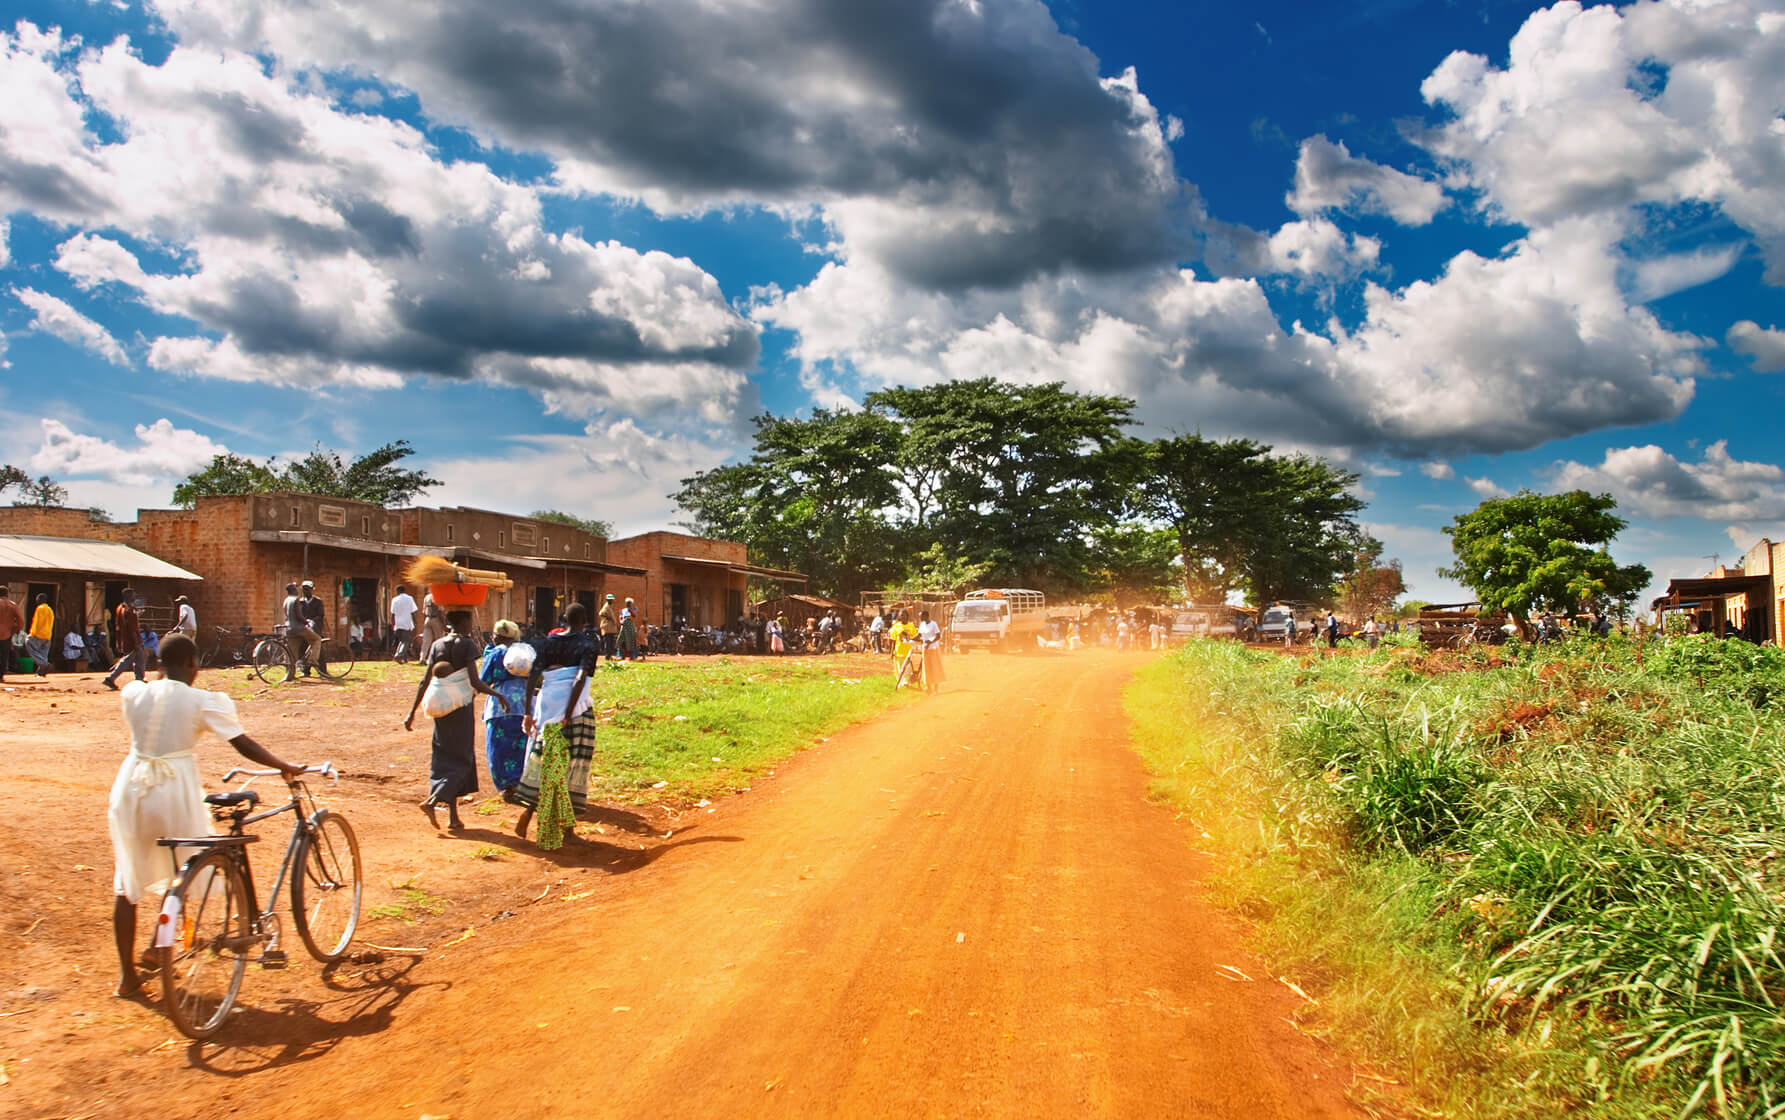 Seattle to Entebbe, Uganda for only $550 roundtrip (Sep-Oct dates)